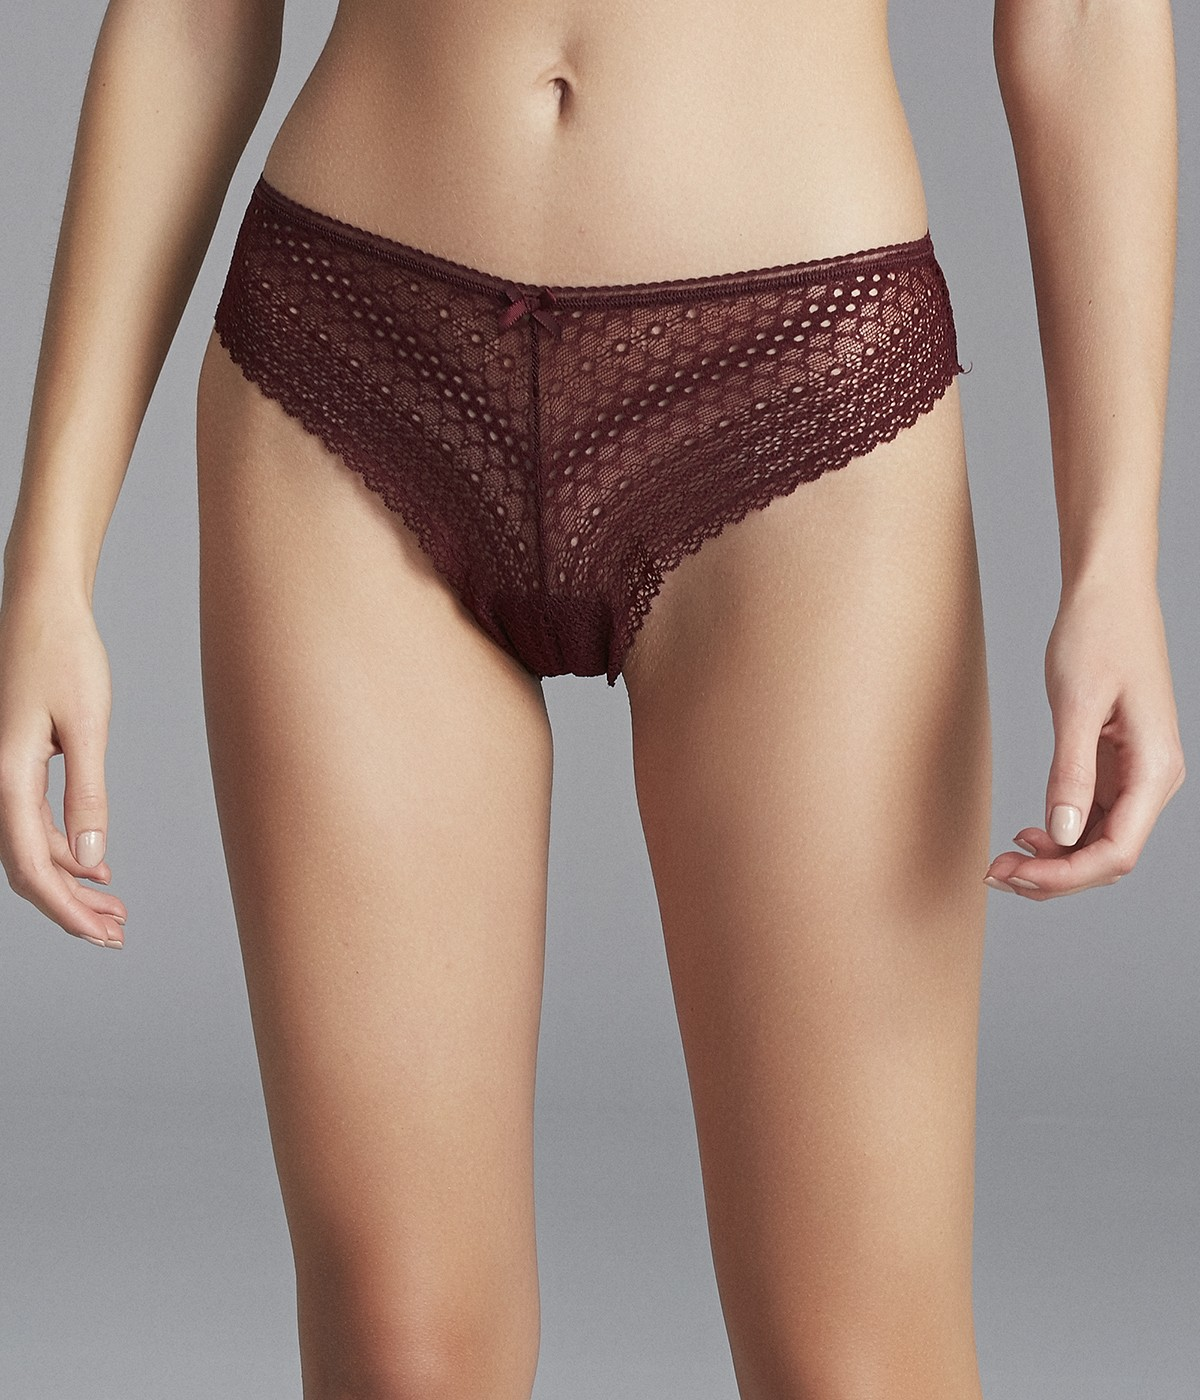 Rusty Lace Brazilian Panties